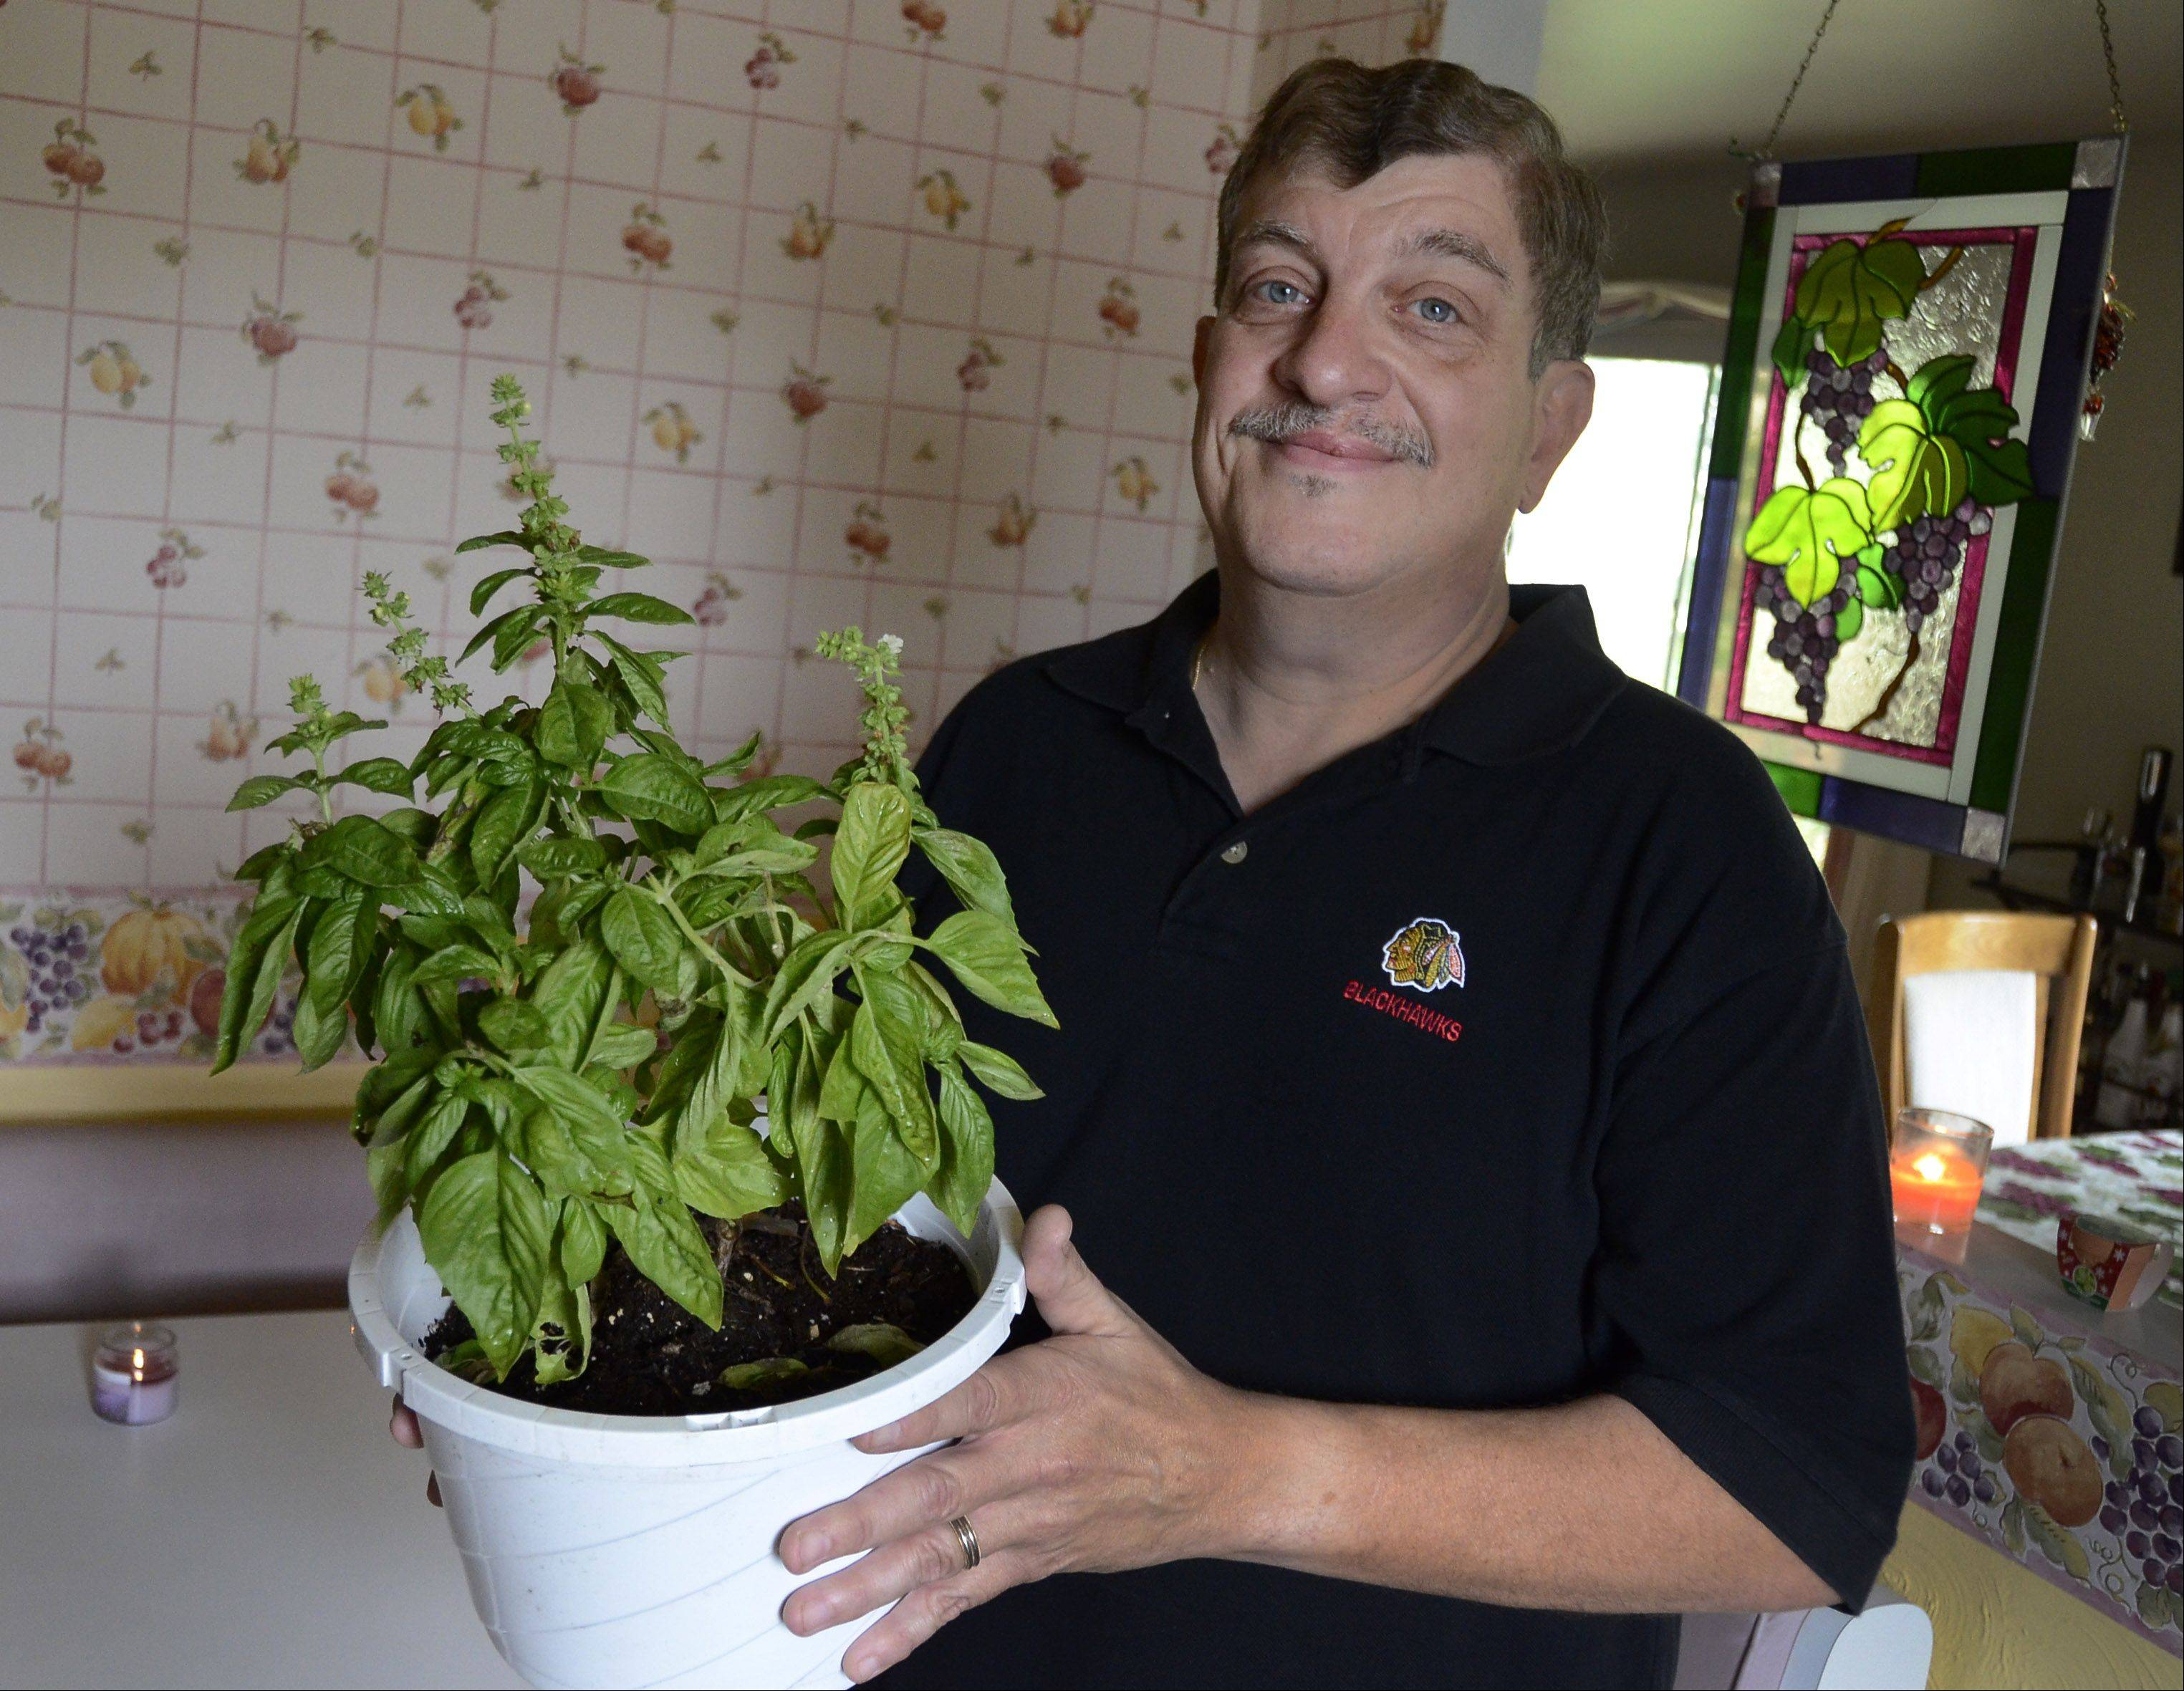 Bill Zars/bzars@dailyherald.comFormer cook of the week Chuck Federici of Hanover Park grows fresh basil for his recipes and is competing for the cook of the year title..